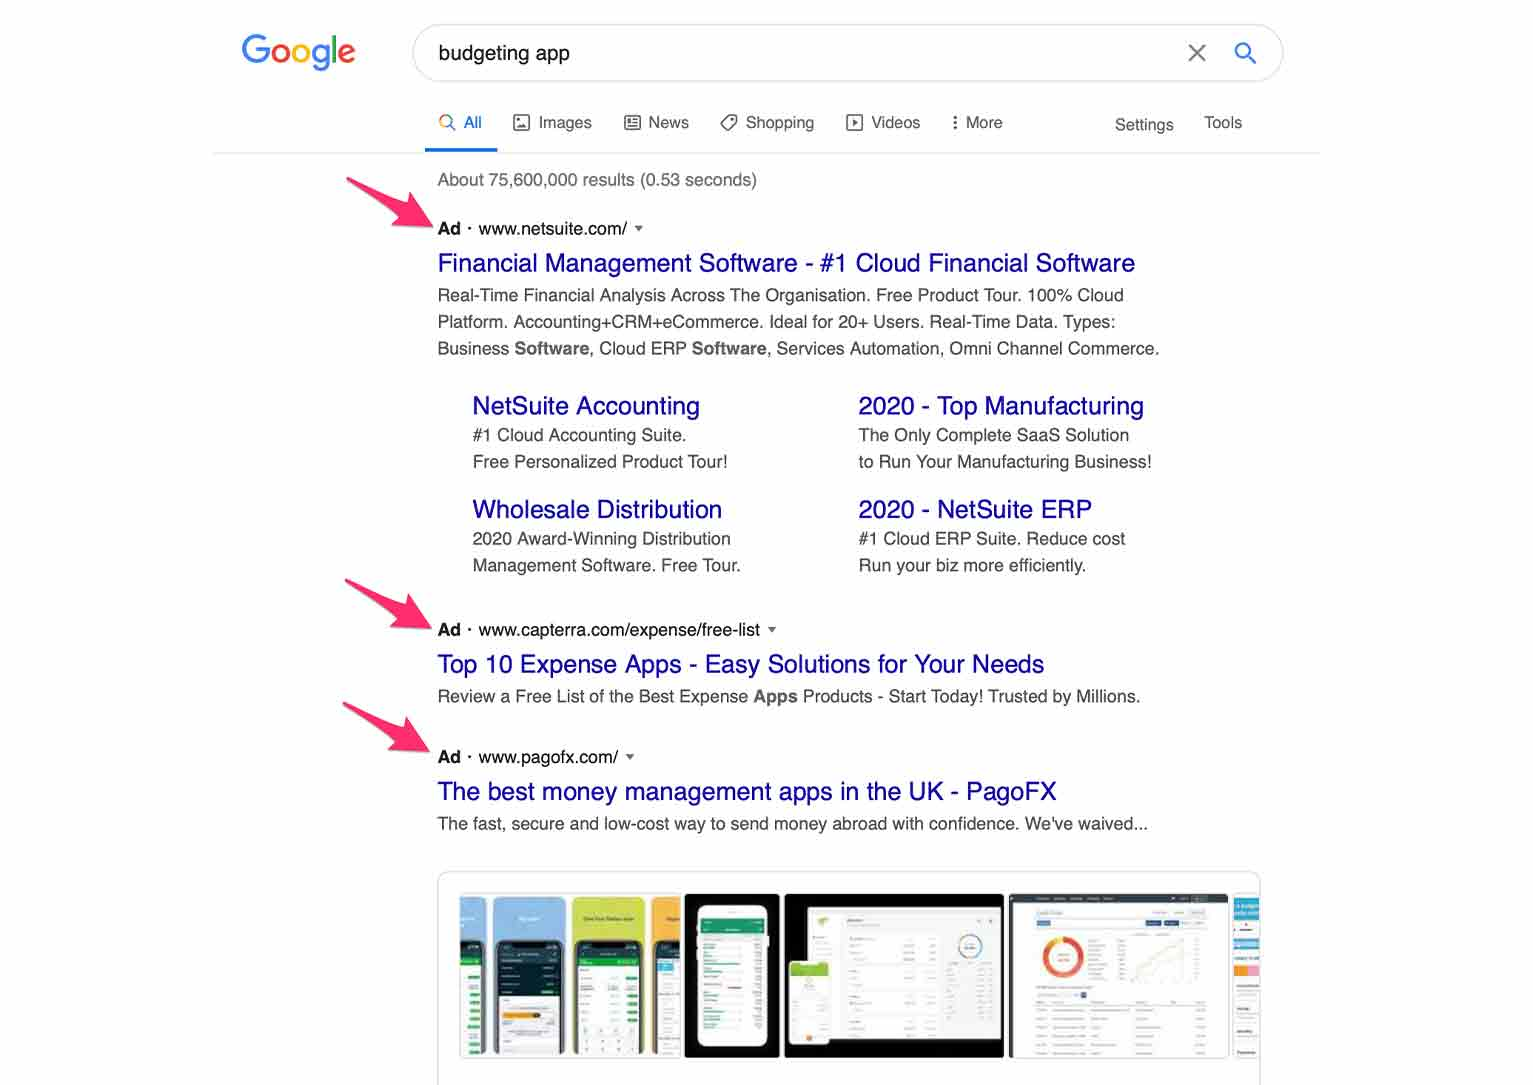 Search ads are text ads displayed in the Google Search Network.